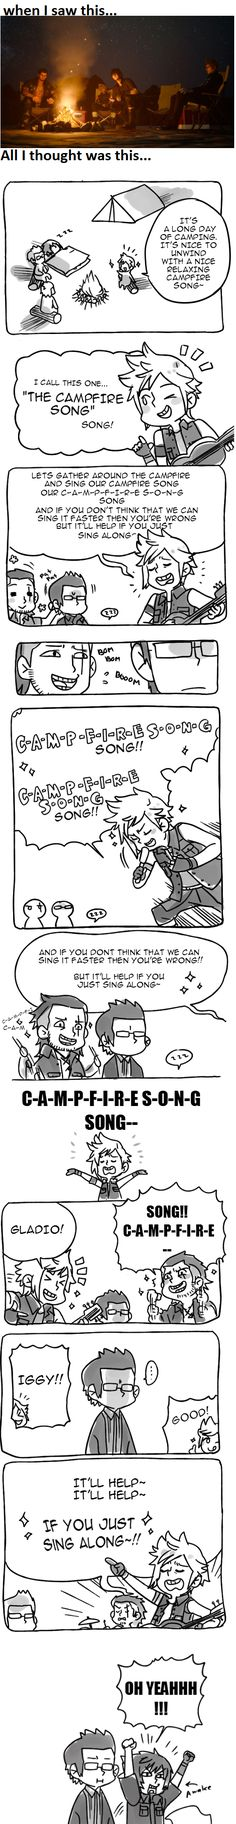 Prompto Campfire song ~ PFFFFT THAT'S GREAT! I LOVE NOCTIS IN THE LAST PANEL XD